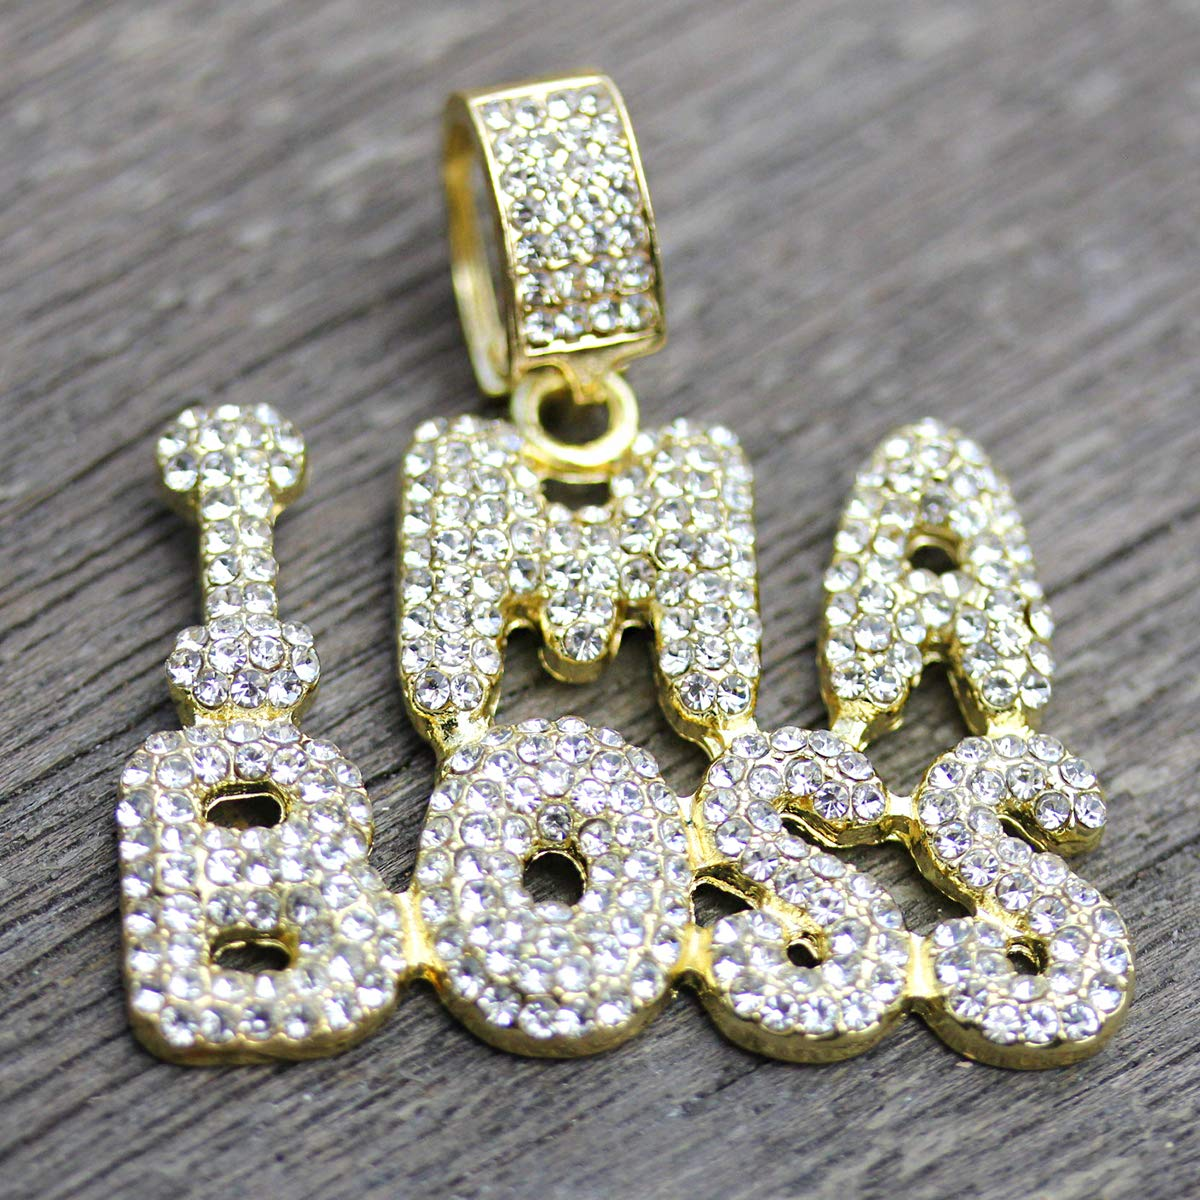 Jewel Town Fully Cz Ima BOSS 14k Gold Pendant Necklace WithTwo 24//18 Inch Tennis Chains 5mm